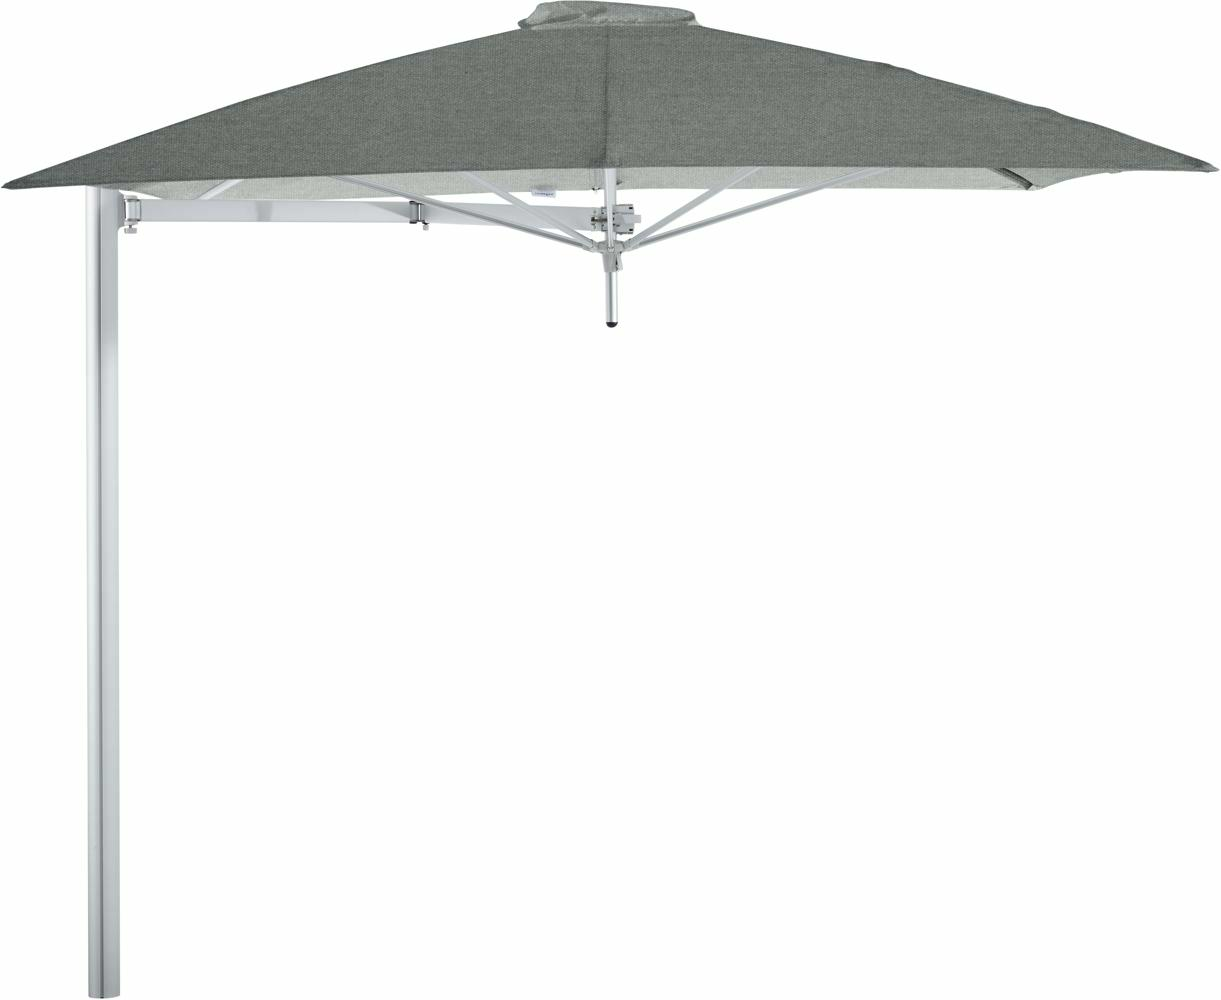 Paraflex cantilever umbrella square 2,3 m with Flanelle fabric and a Neo arm